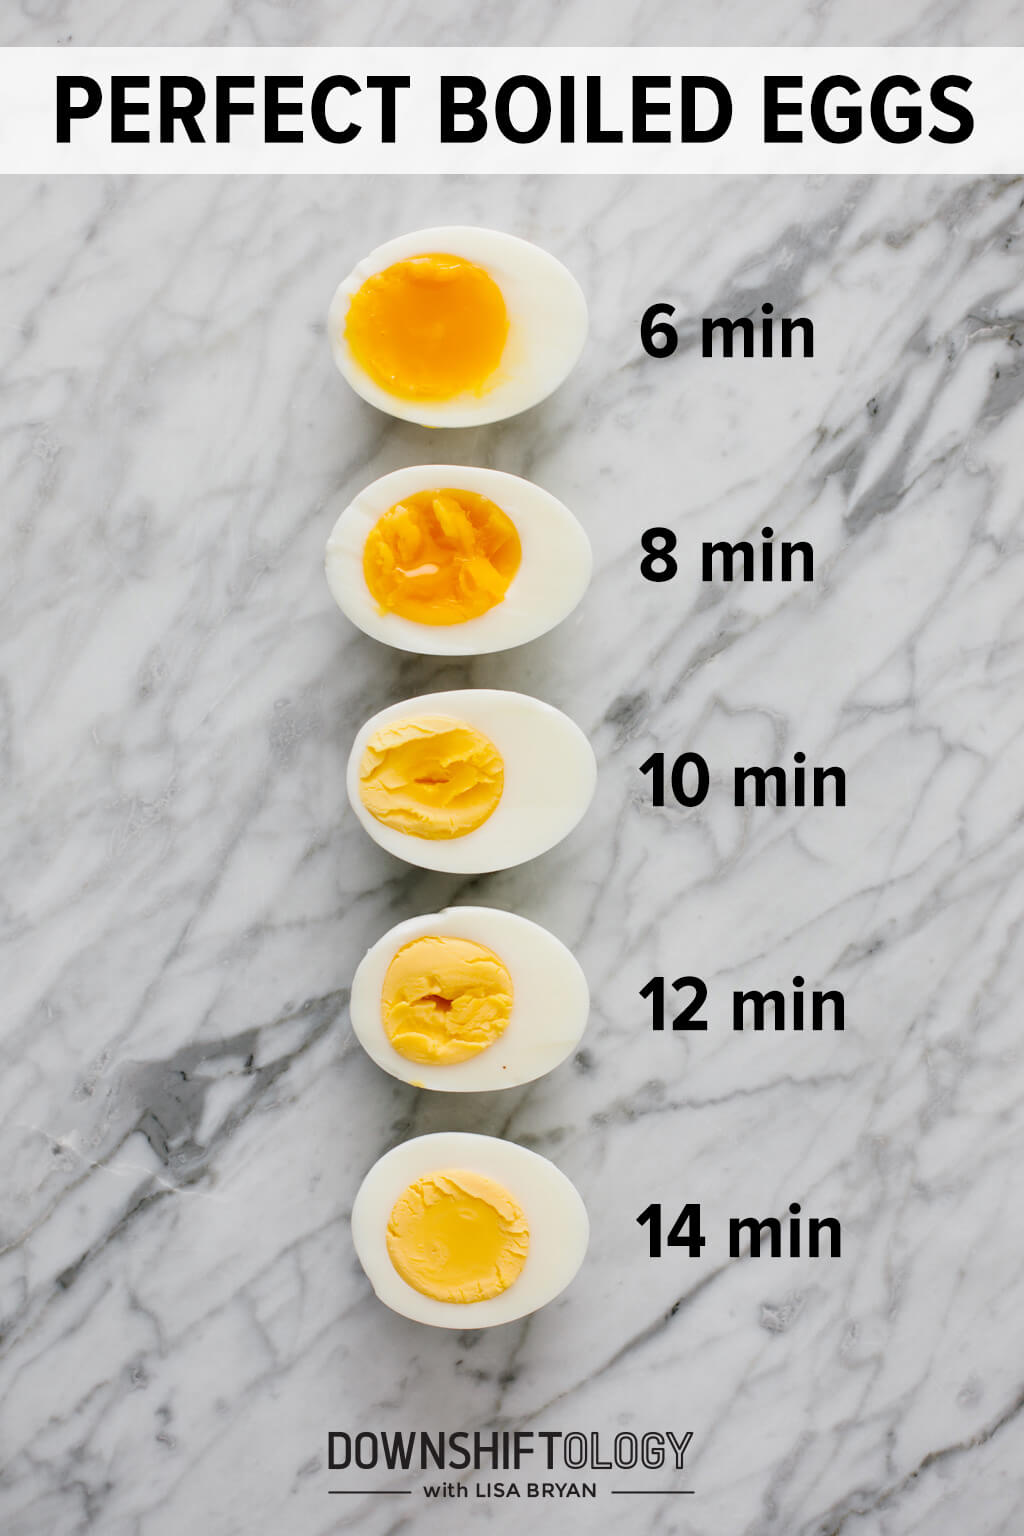 How long do you boil an egg to get a runny yolk